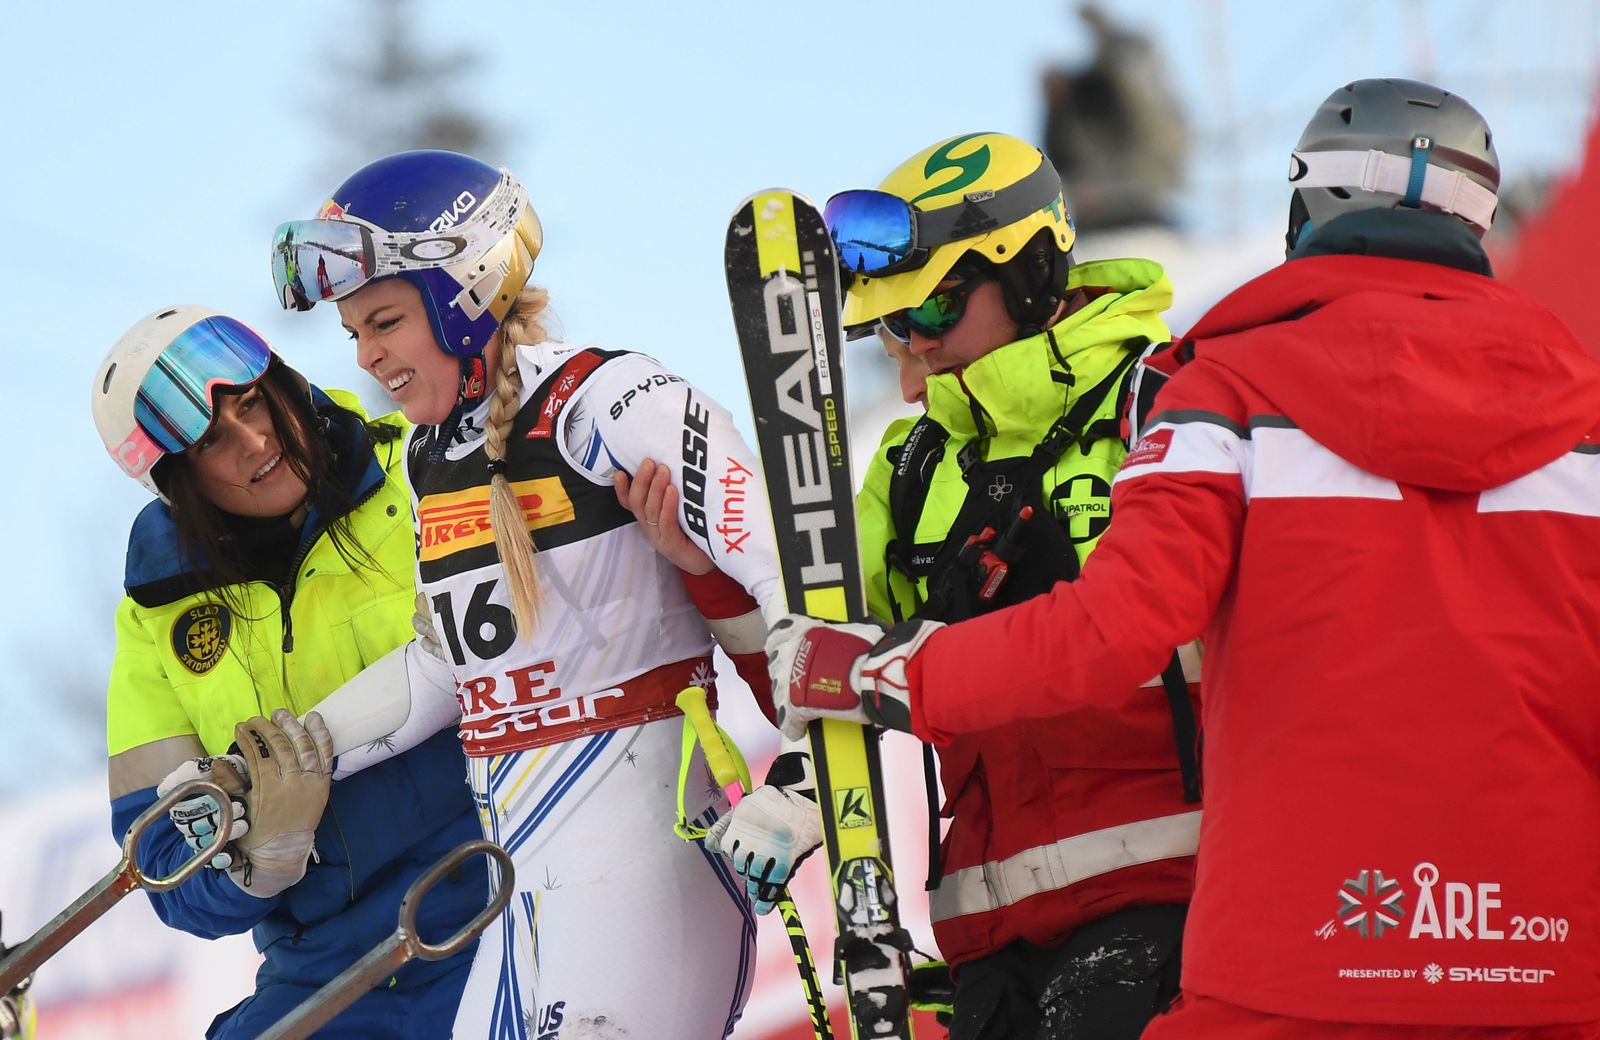 ALPINE SKI-WORLD-WOMEN-SWE-SUPER G